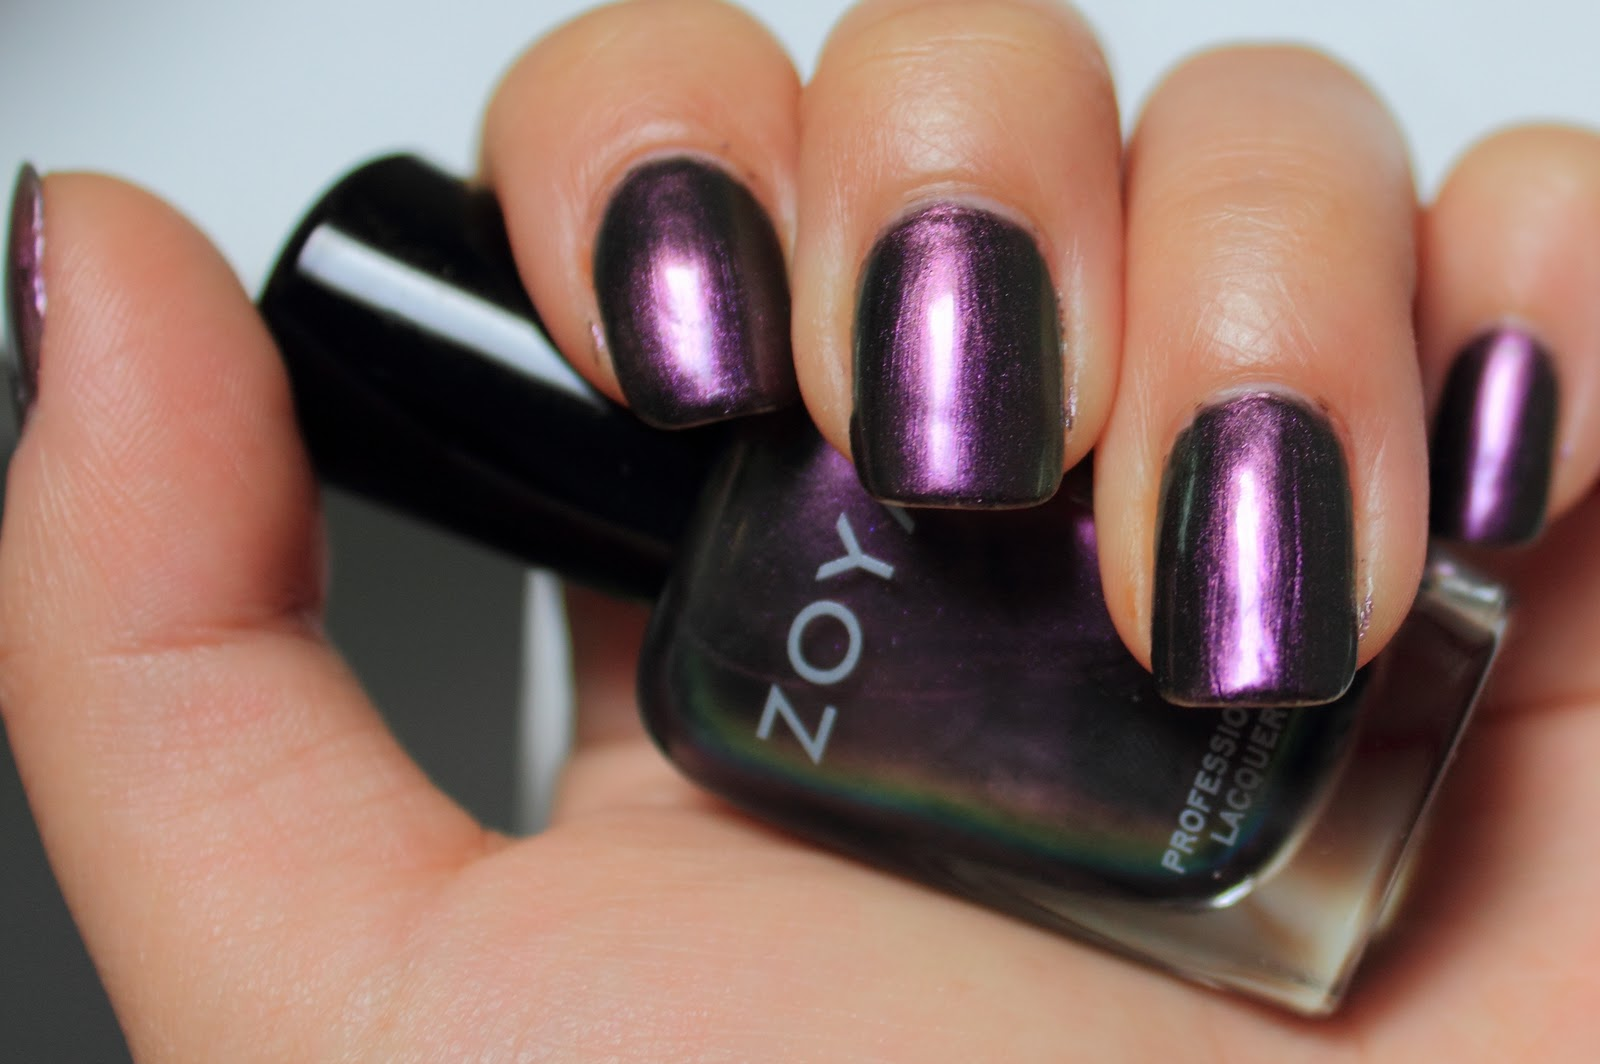 Nunu will blog for chicken wings.: Zoya NOTDs plus discount code